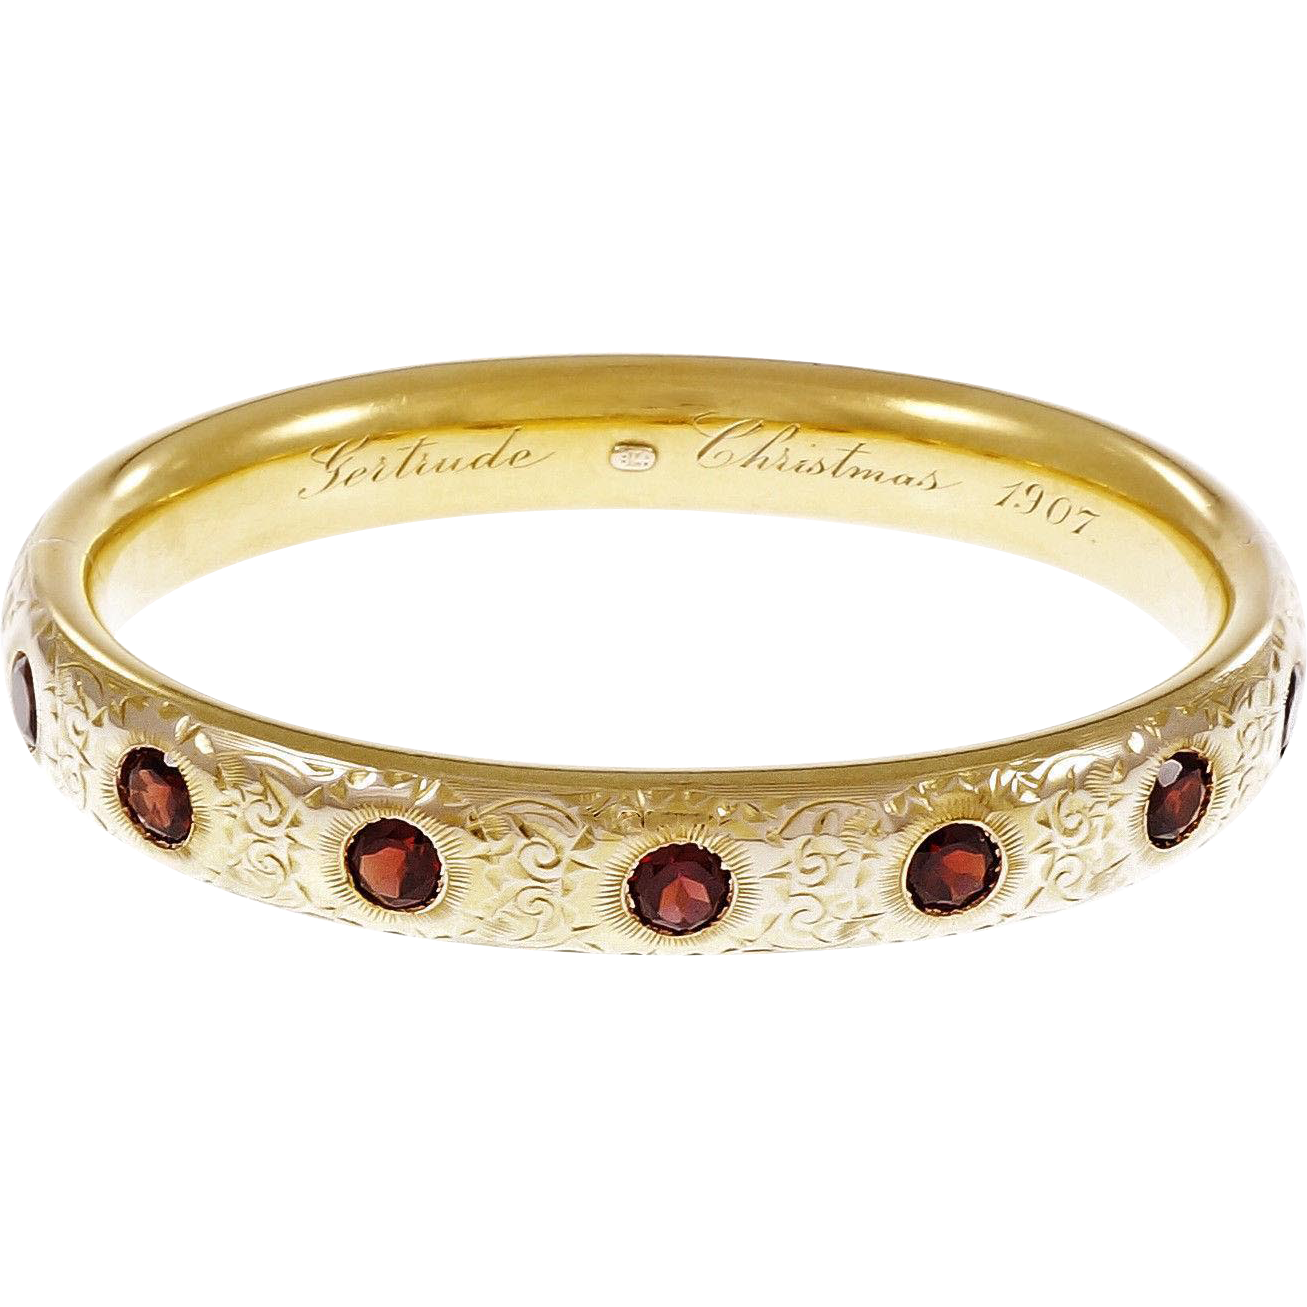 Victorian Garnet Hand Engraved 18 Karat Yellow Gold Bangle Bracelet